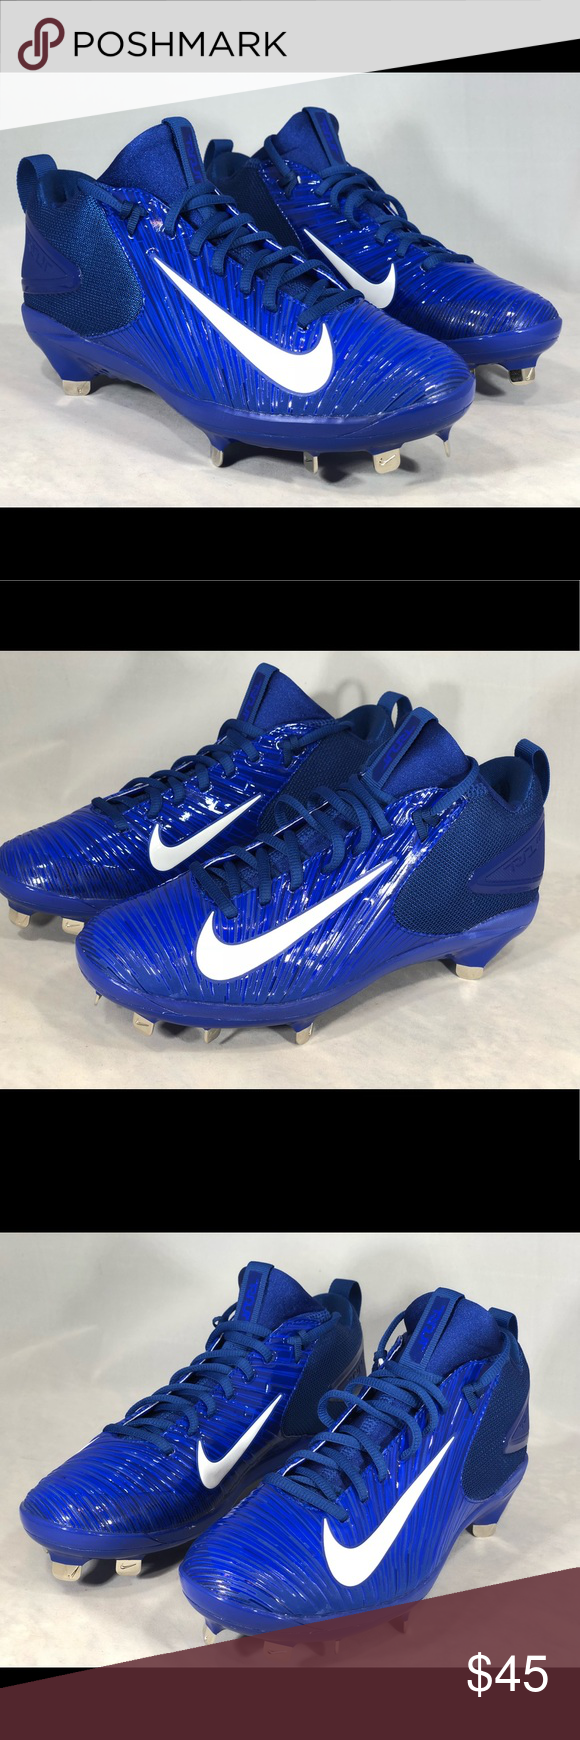 de40a57ee Nike Force Trout 3 MCS Blue Molded Baseball Cleats Nike Men s Trout 3 Pro  Baseball Metal Cleats Color  Racer Blue White Rush Blue Phylon midsole for  ...